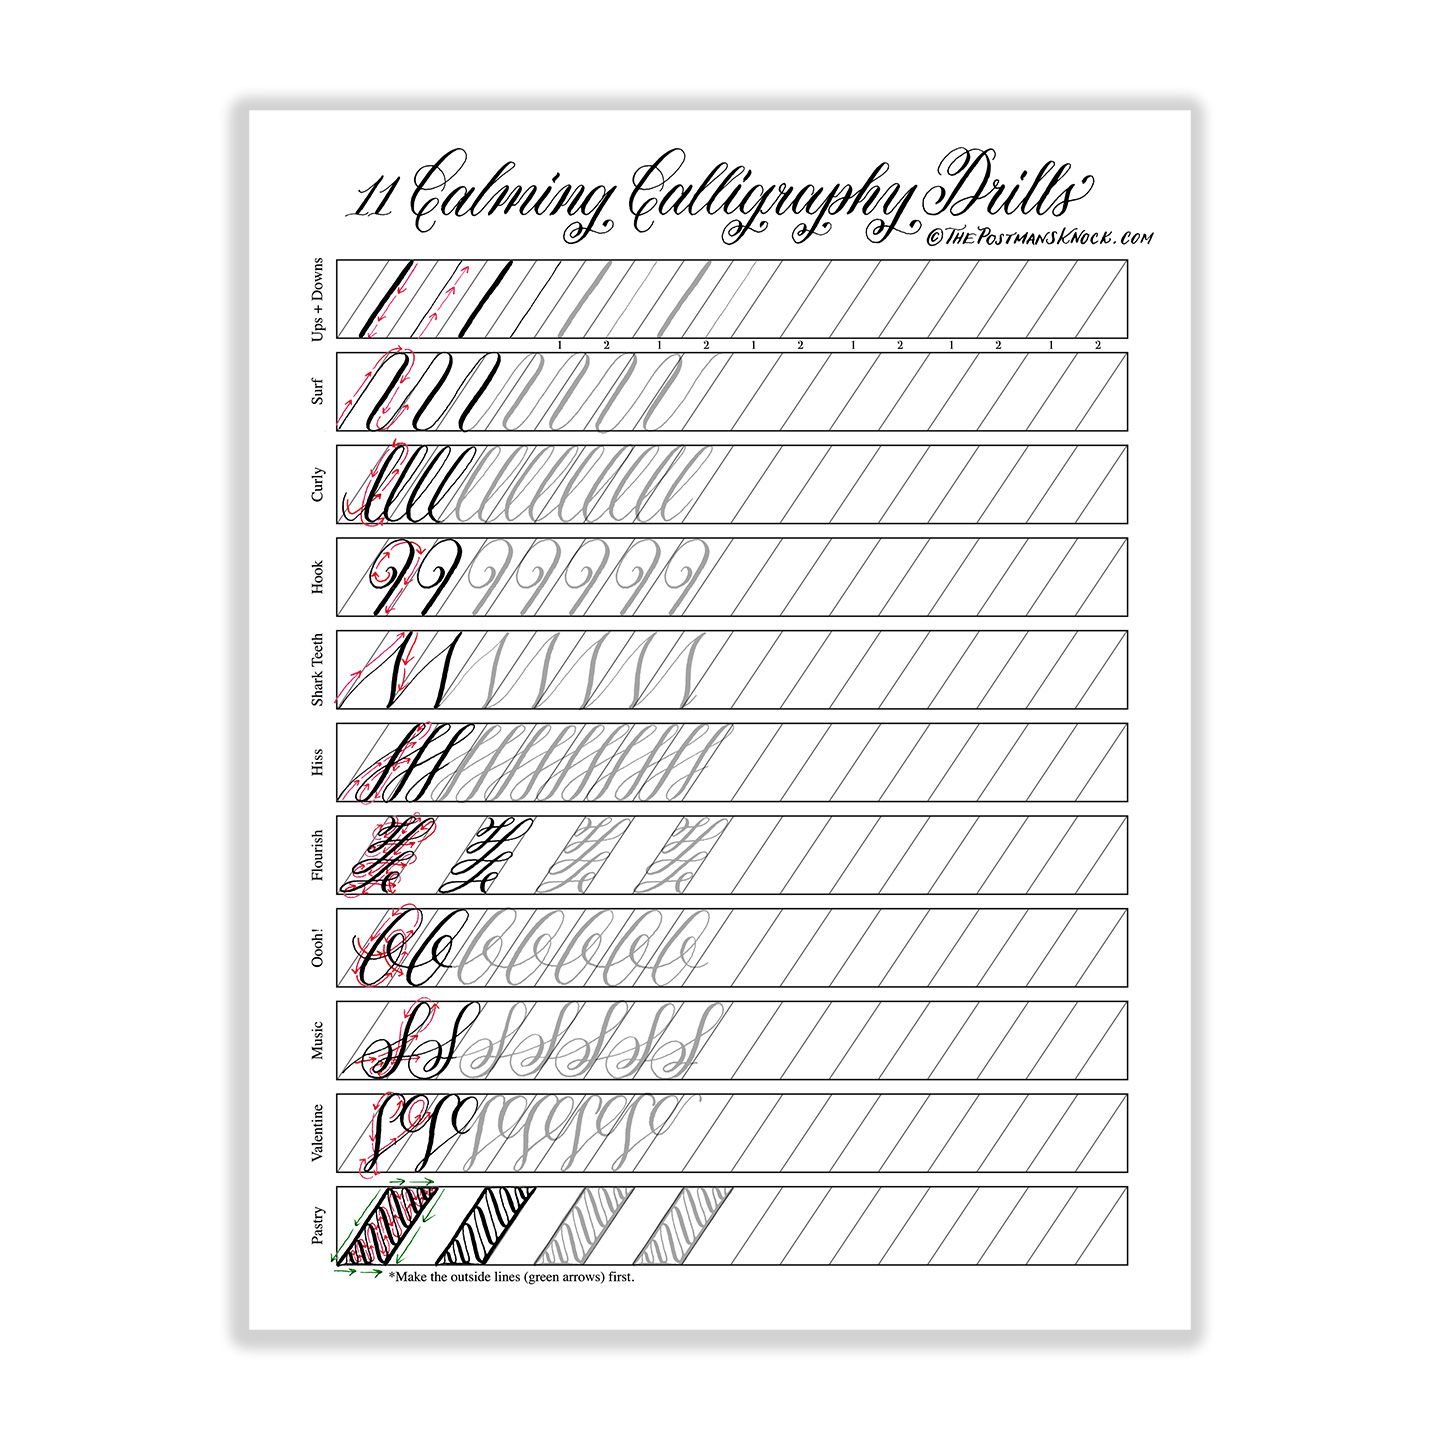 11 Calming Calligraphy Drills Printable